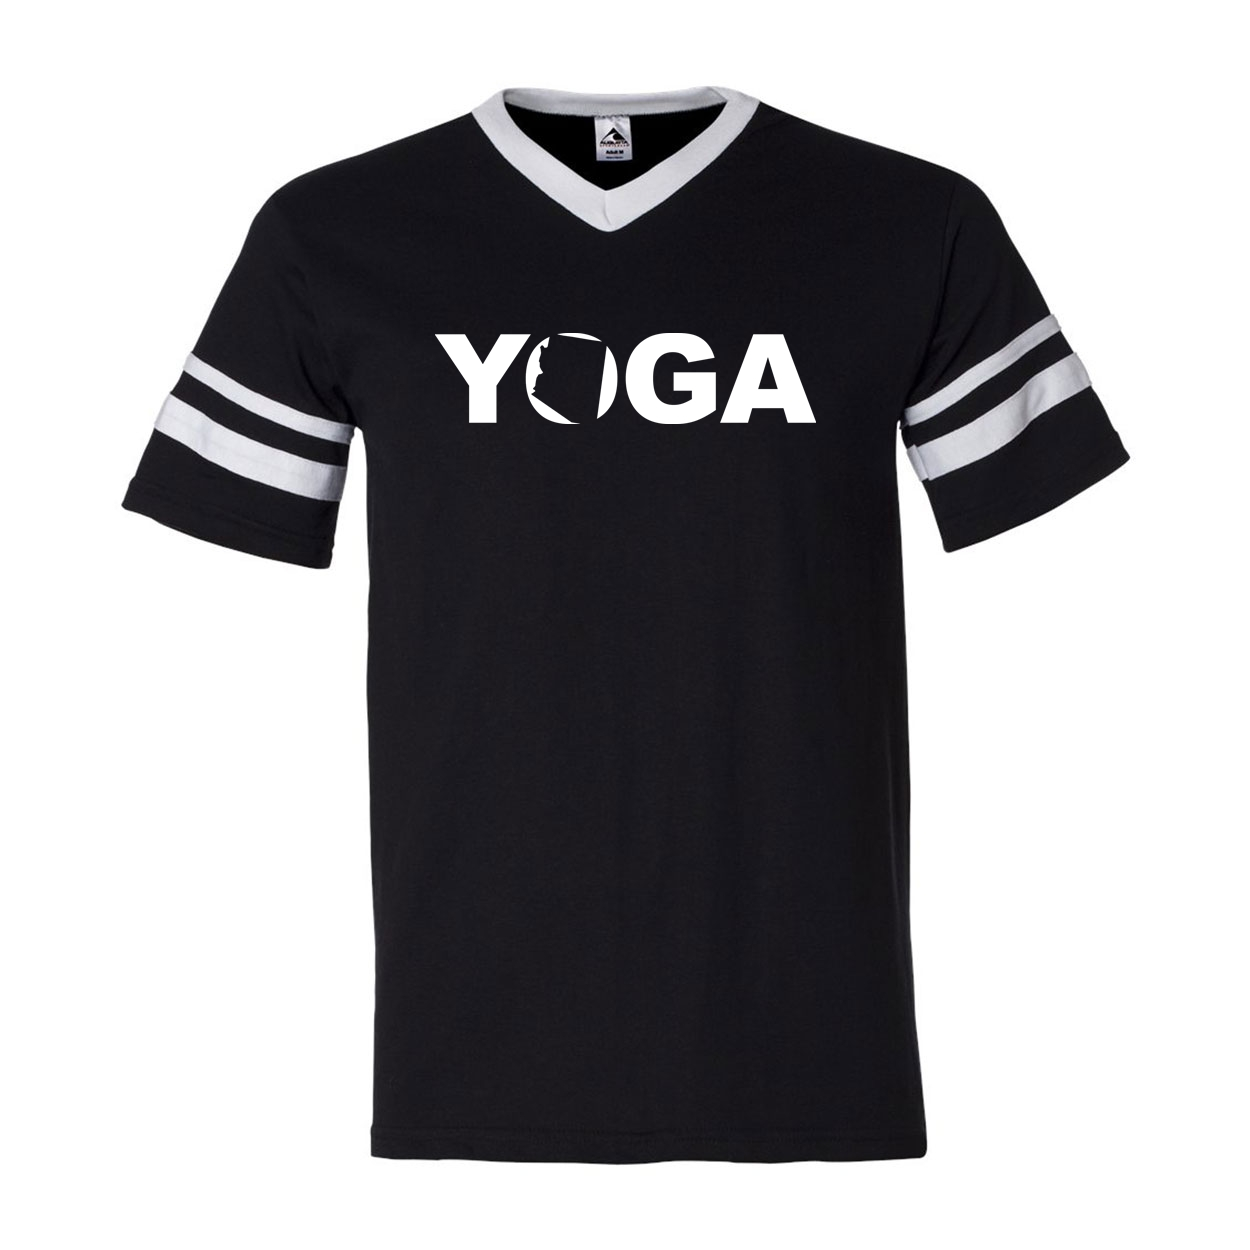 Yoga Arizona Classic Premium Striped Jersey T-Shirt Black/White (White Logo)